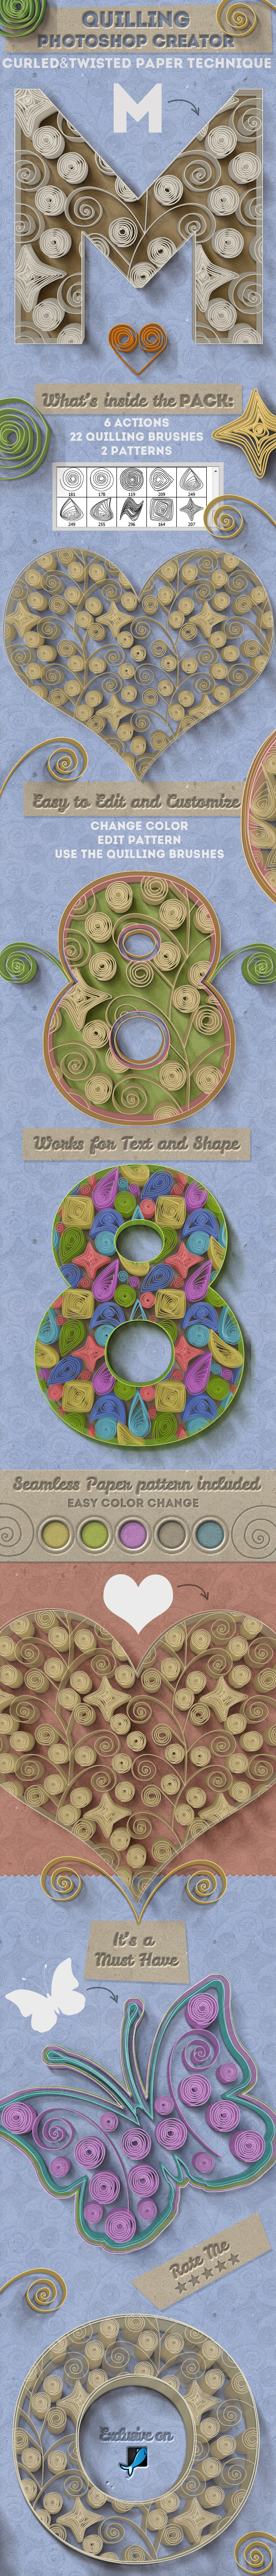 Quilling Paper Art Photoshop Creator - Utilities Actions